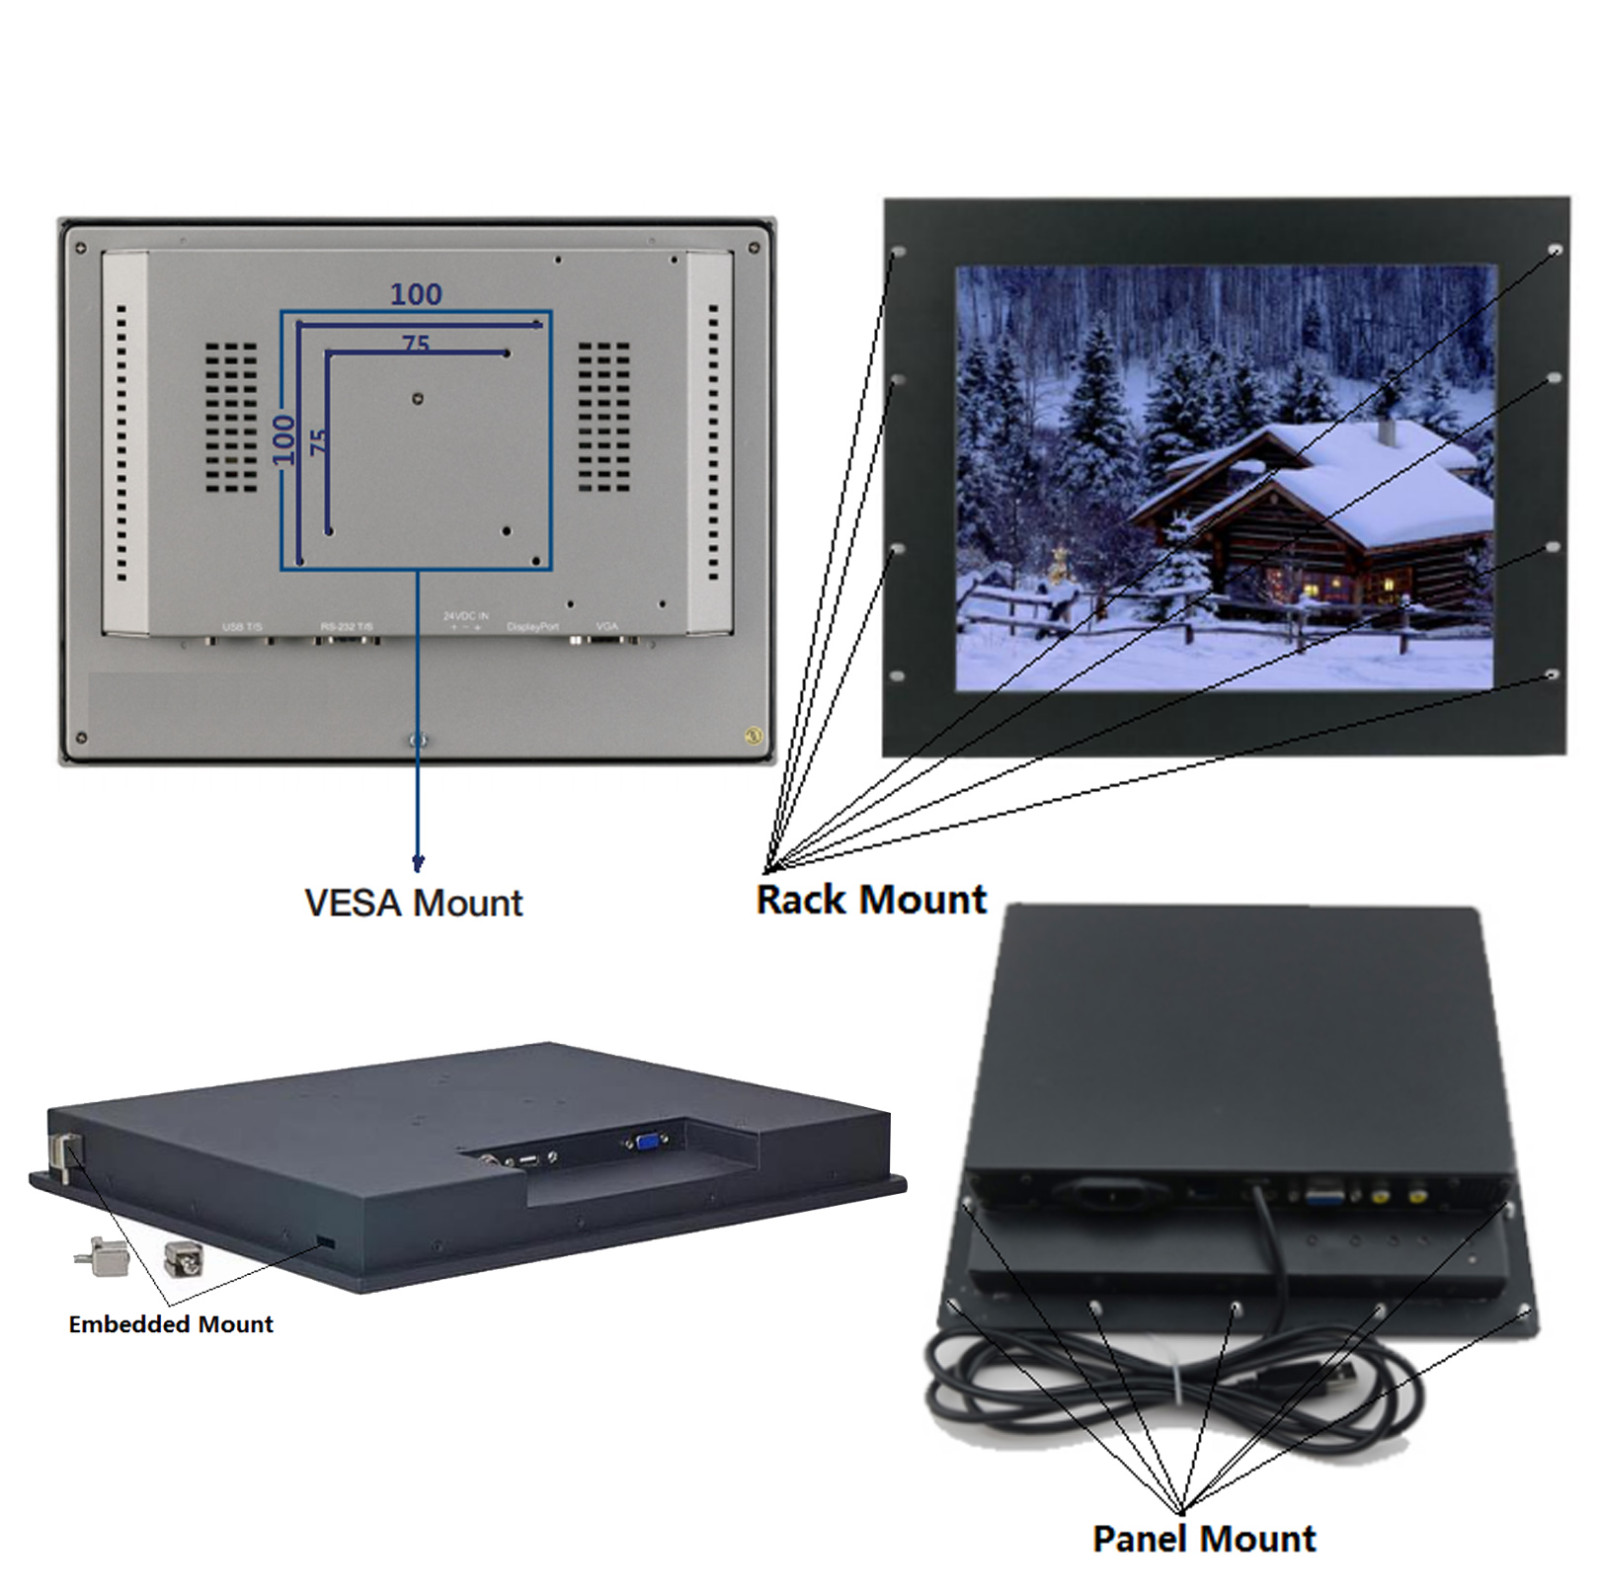 Hengstar -Best Ip65 Rack Mount Embedded Mount Panel Mount Touch Sreen-12